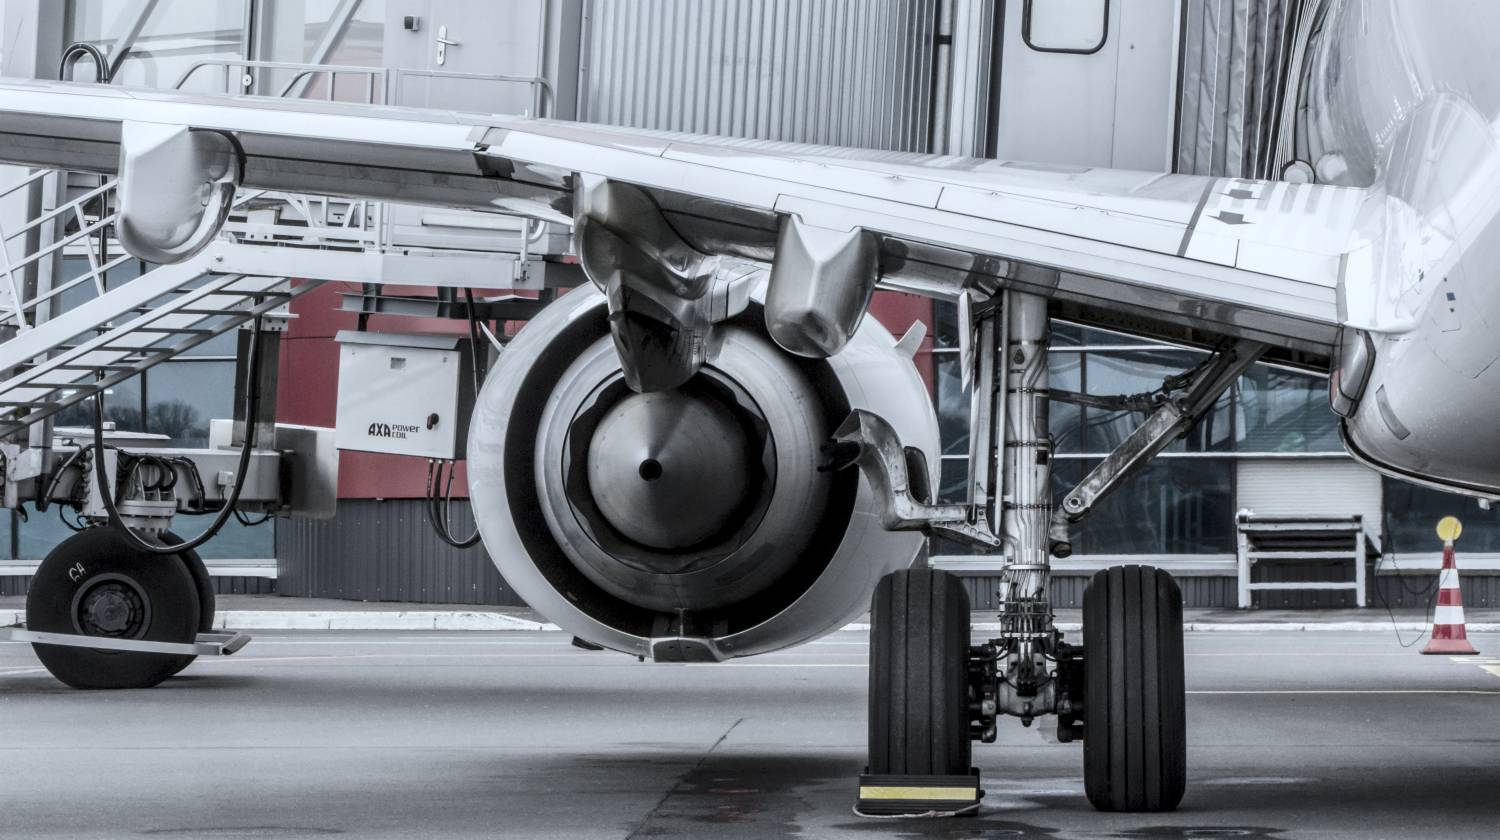 Feature | Engine of airplane in Kaliningrad | How To Invest In Aerospace Companies With Your IRA | aerospace corporation